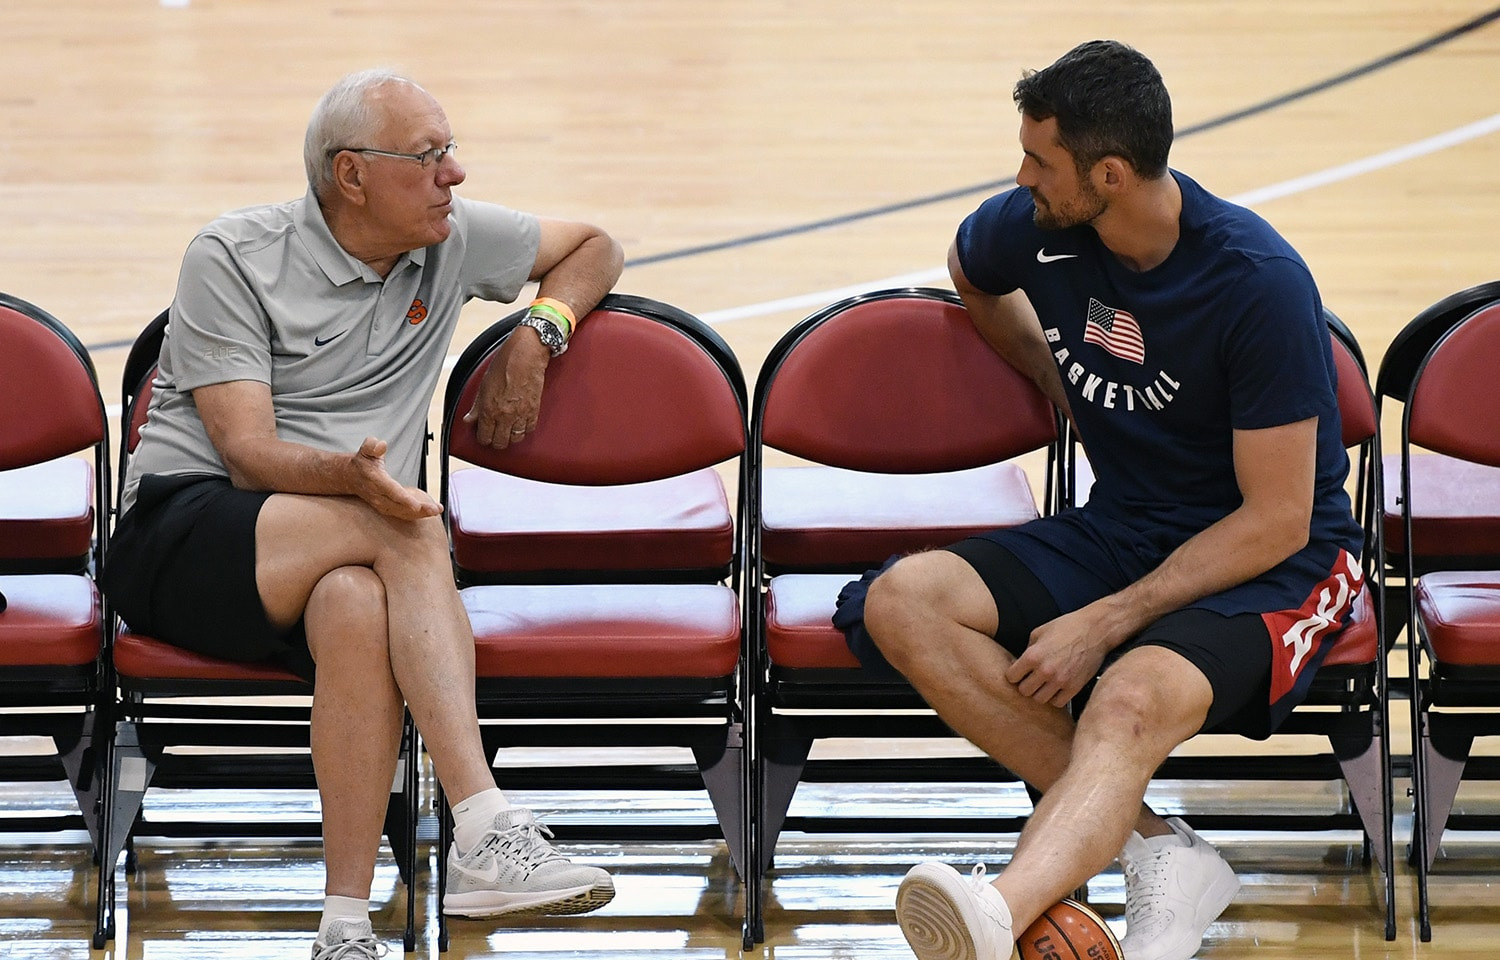 LAS VEGAS, NV - JULY 26: Head coach Jim Boeheim (L) of the Syracuse Orange, a former assistant coach for the United States, talks with Kevin Love #58 of the United States during a practice session at the 2018 USA Basketball Men's National Team minicamp at the Mendenhall Center at UNLV on July 26, 2018 in Las Vegas, Nevada.(Ethan Miller/NBAE via Getty Images)